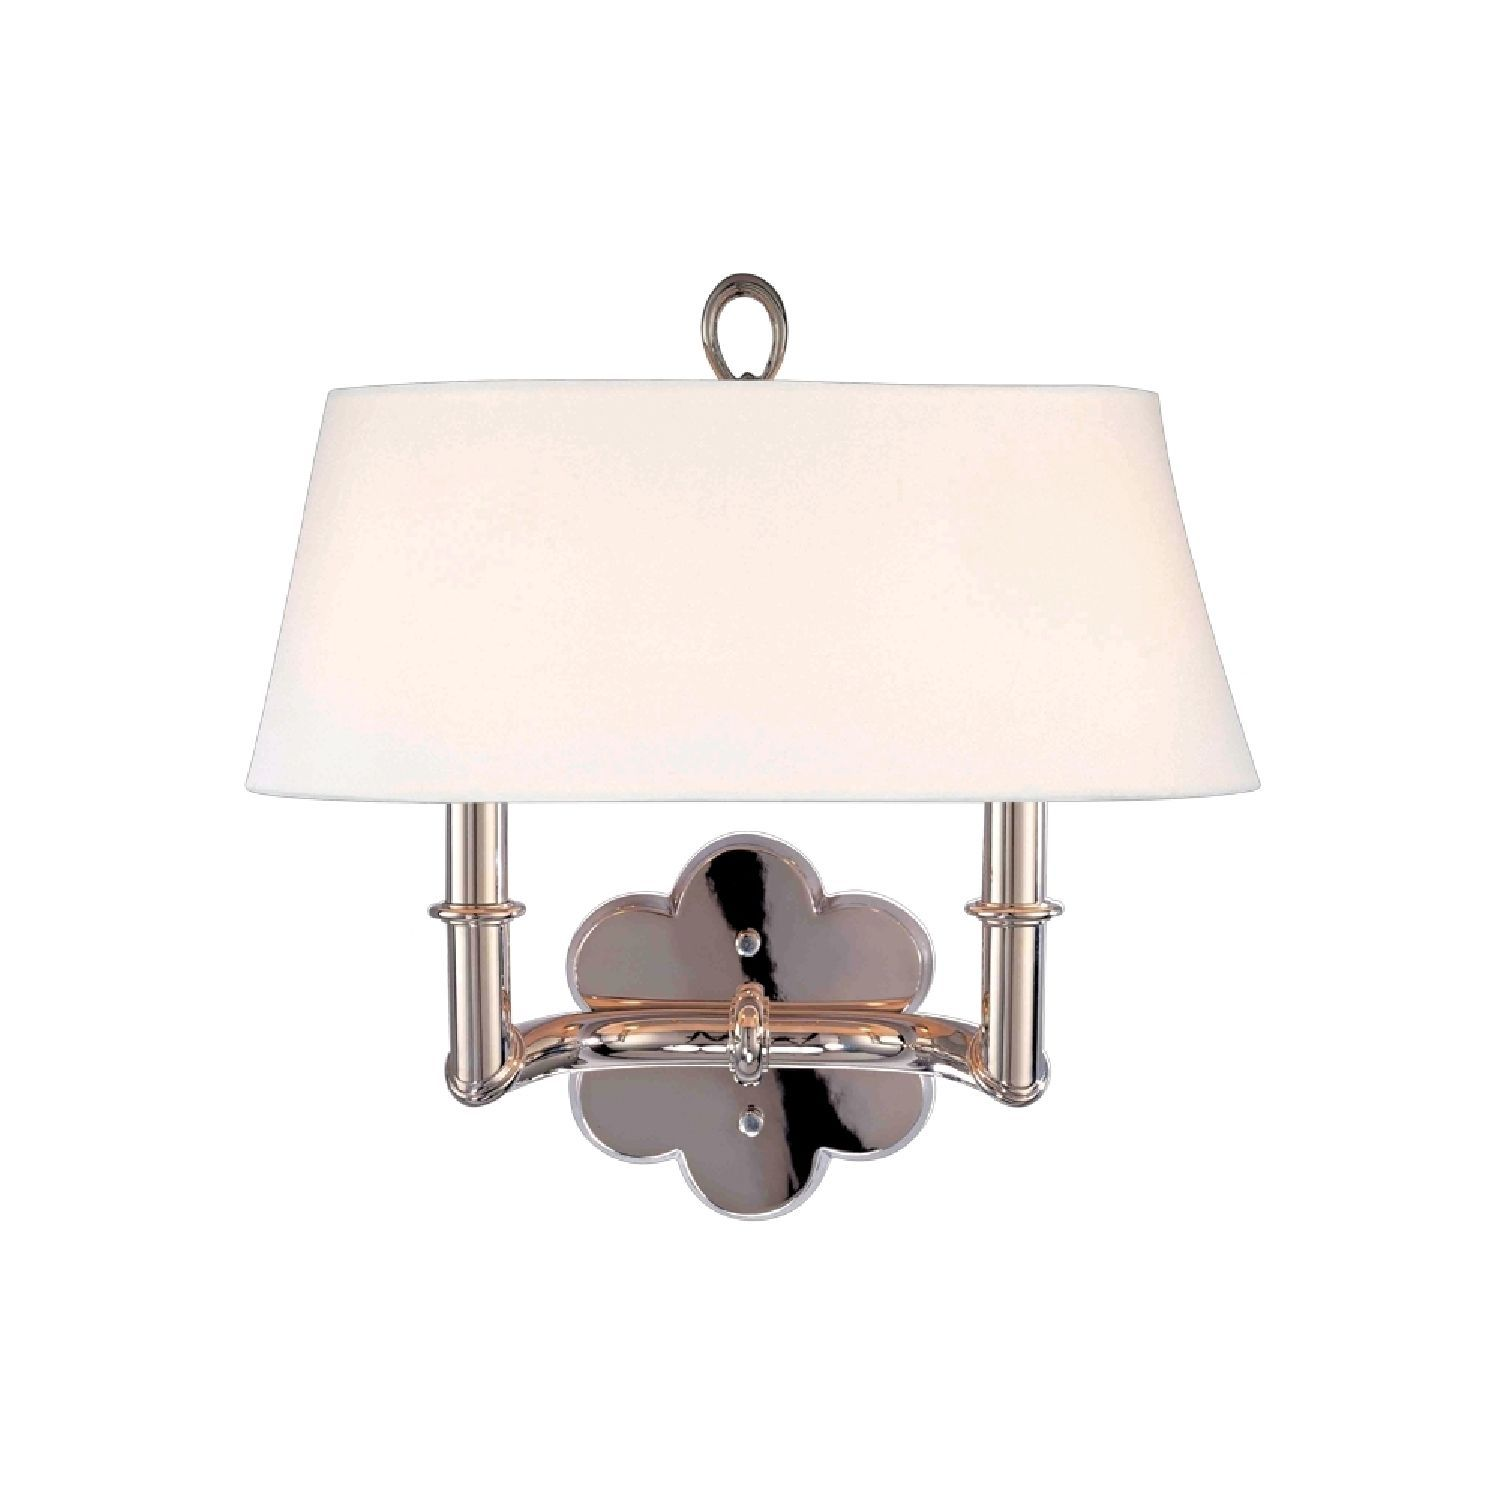 Hudson valley pomona light polished nickel wall sconce polished